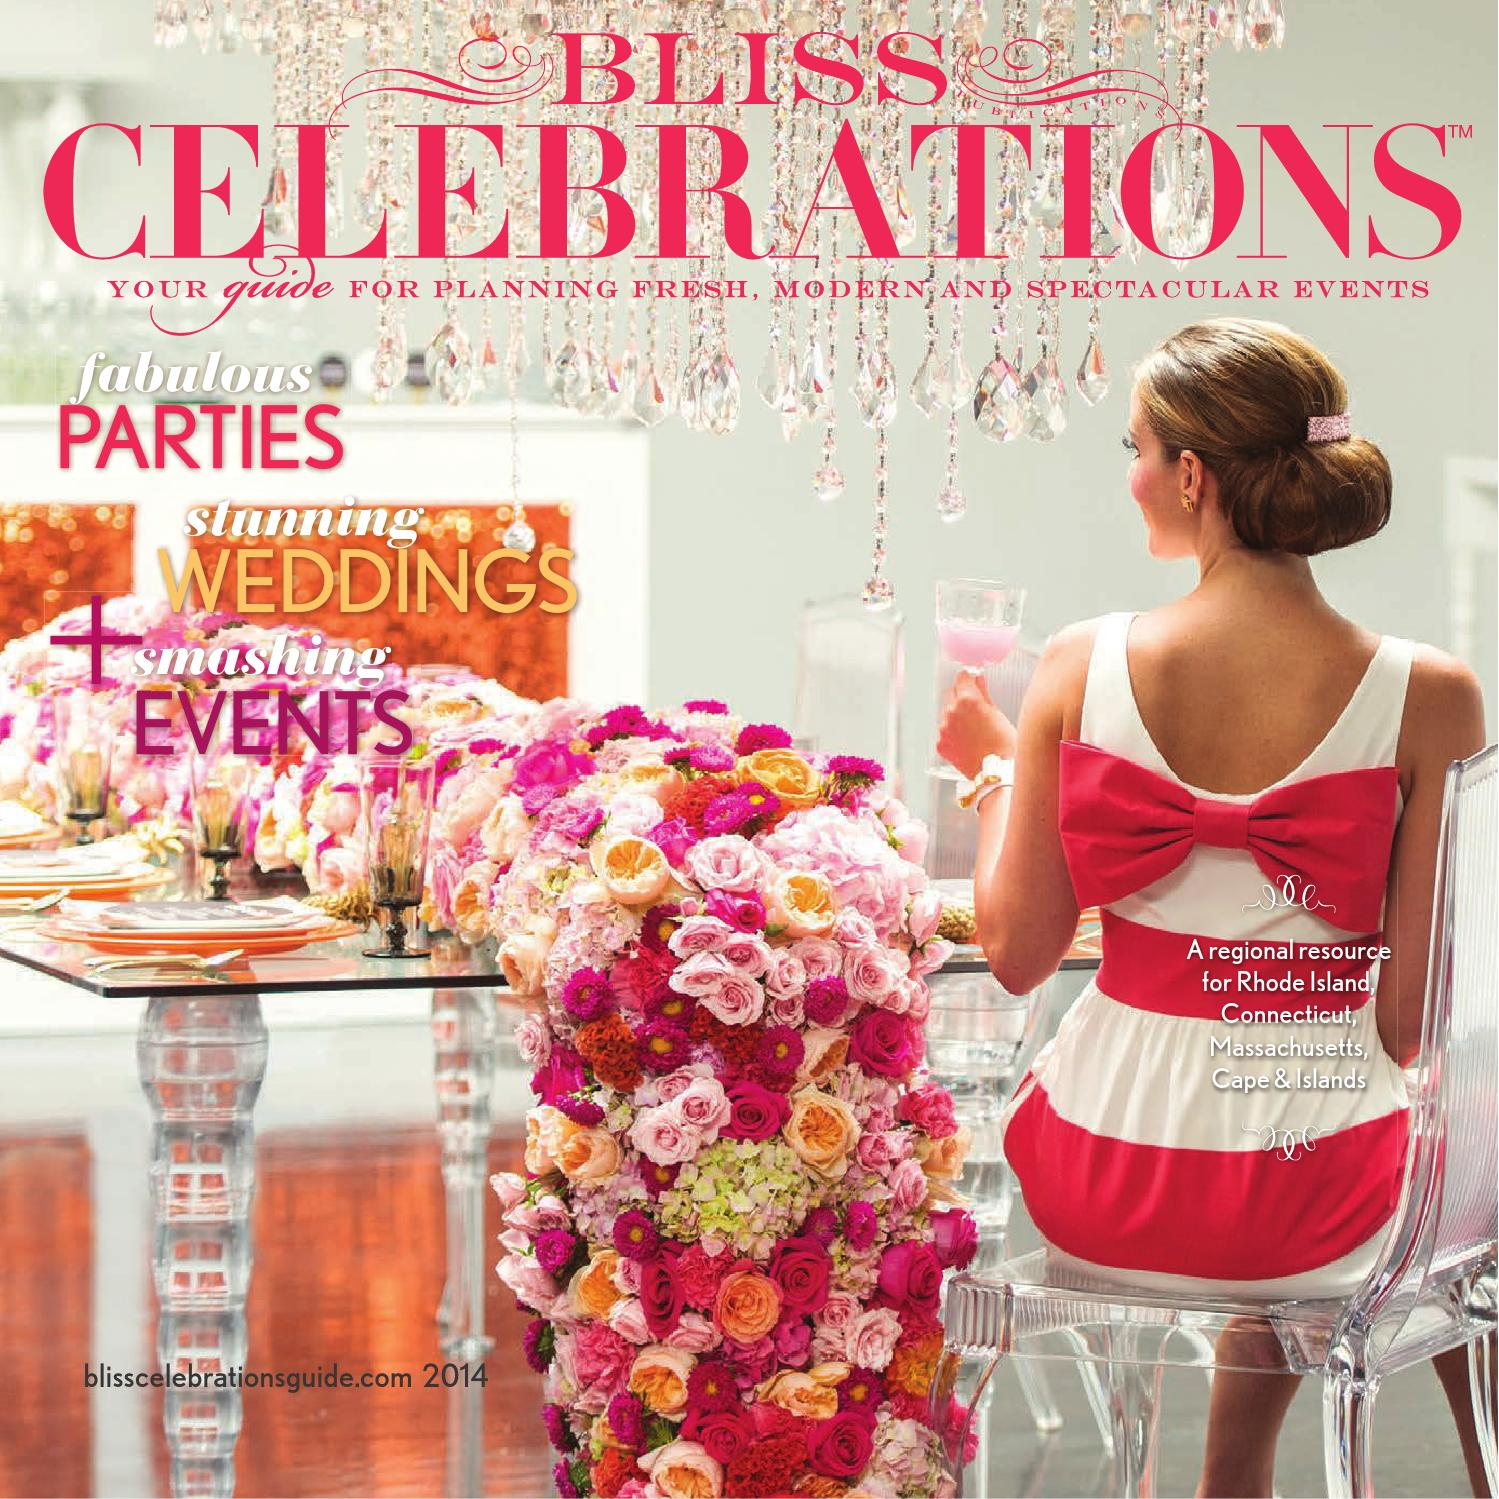 BLISS CELEBRATIONS GUIDE 2014 By Bliss Publications   Issuu